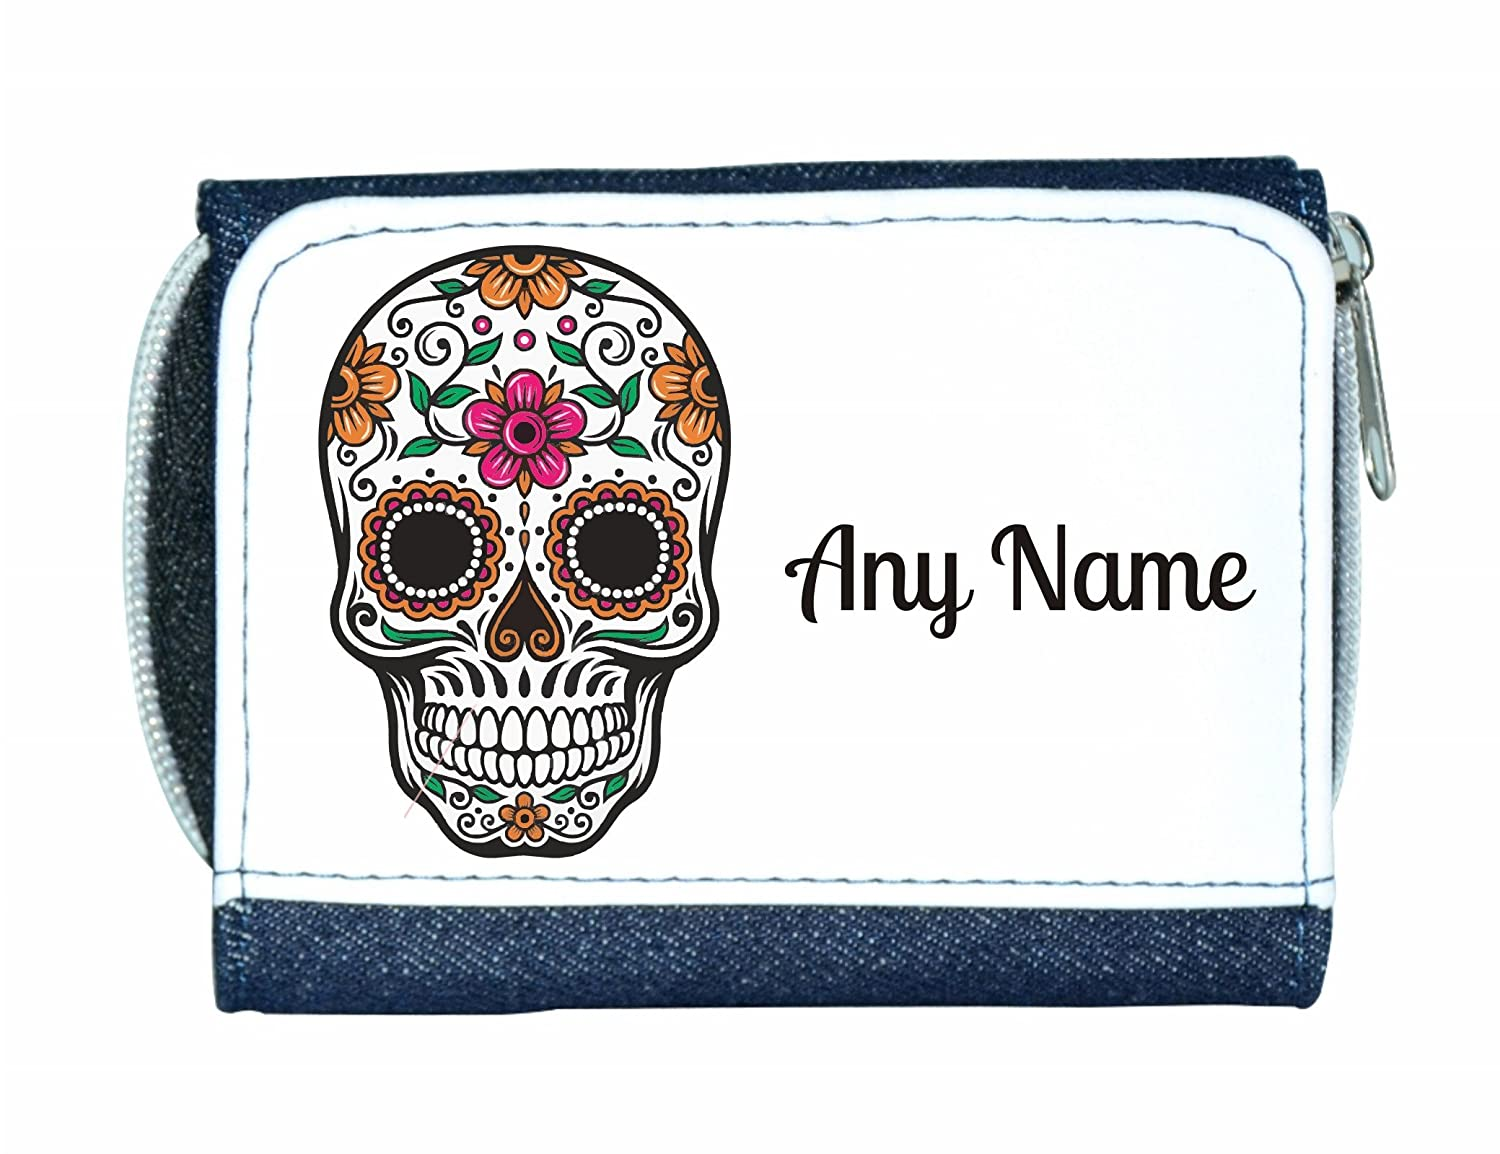 Personalised Denim Purse With Candy Skull By Mayzie Designs/®